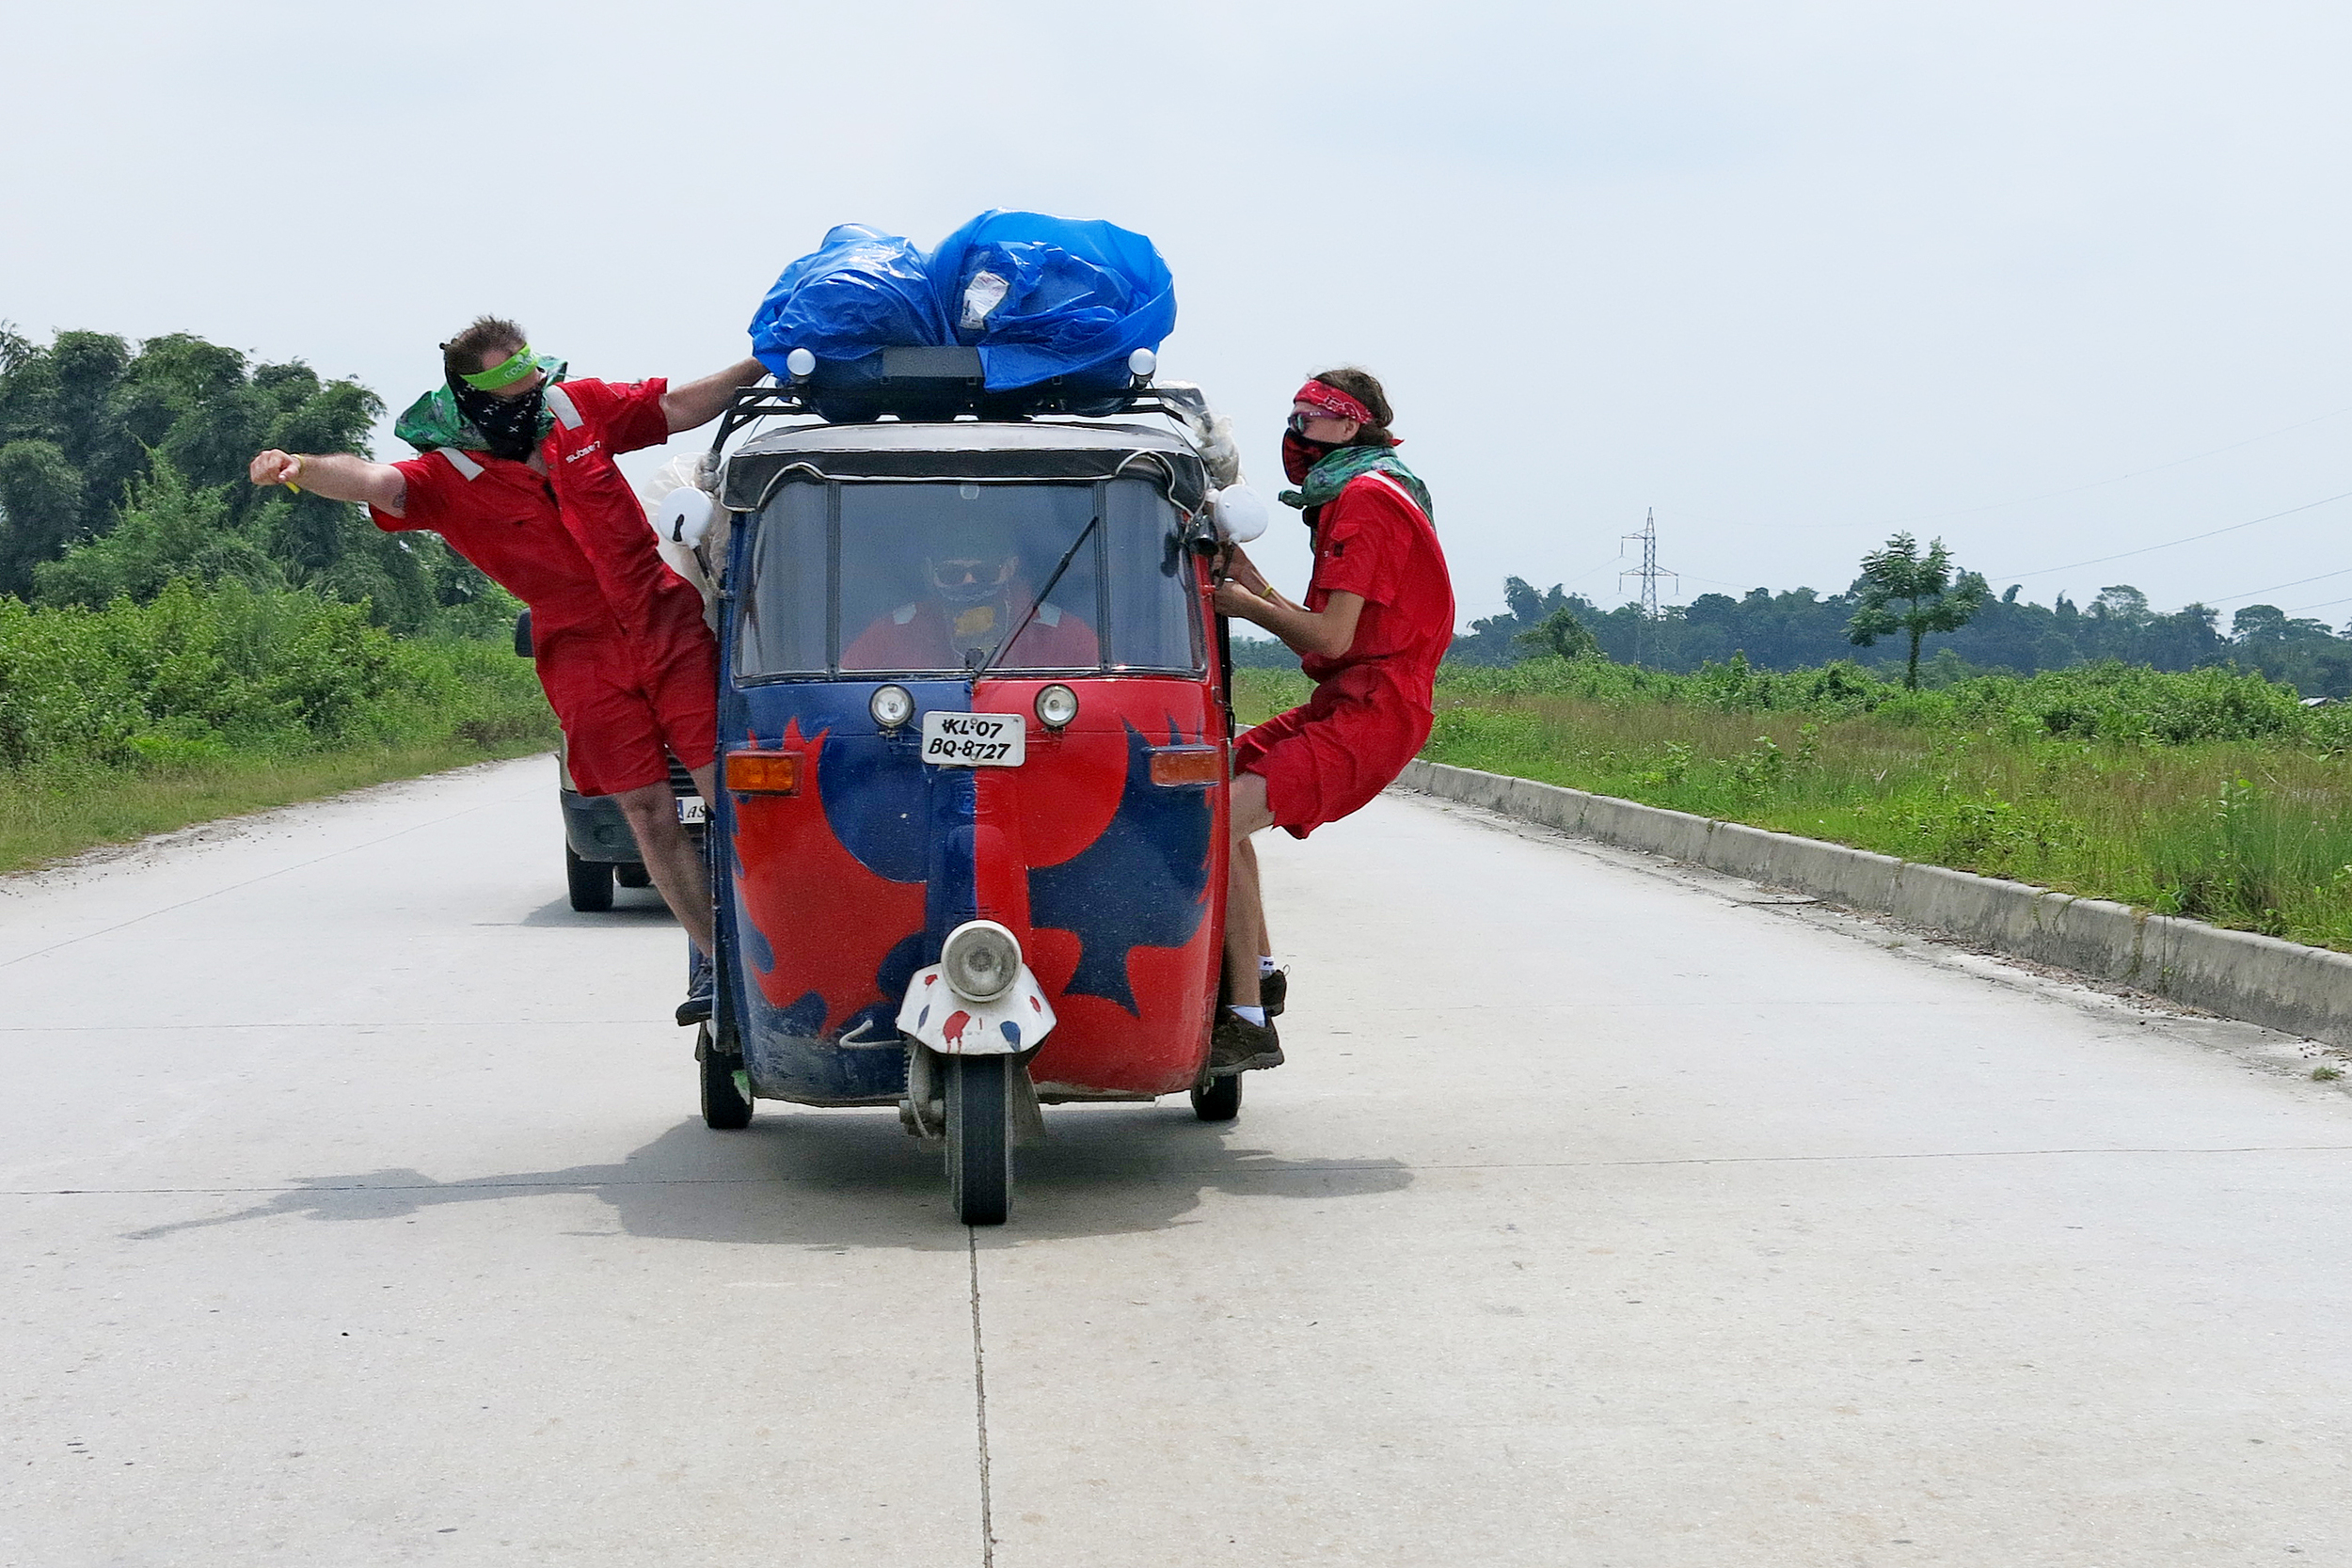 Two guys in masks hang out of a moving tuk tuk